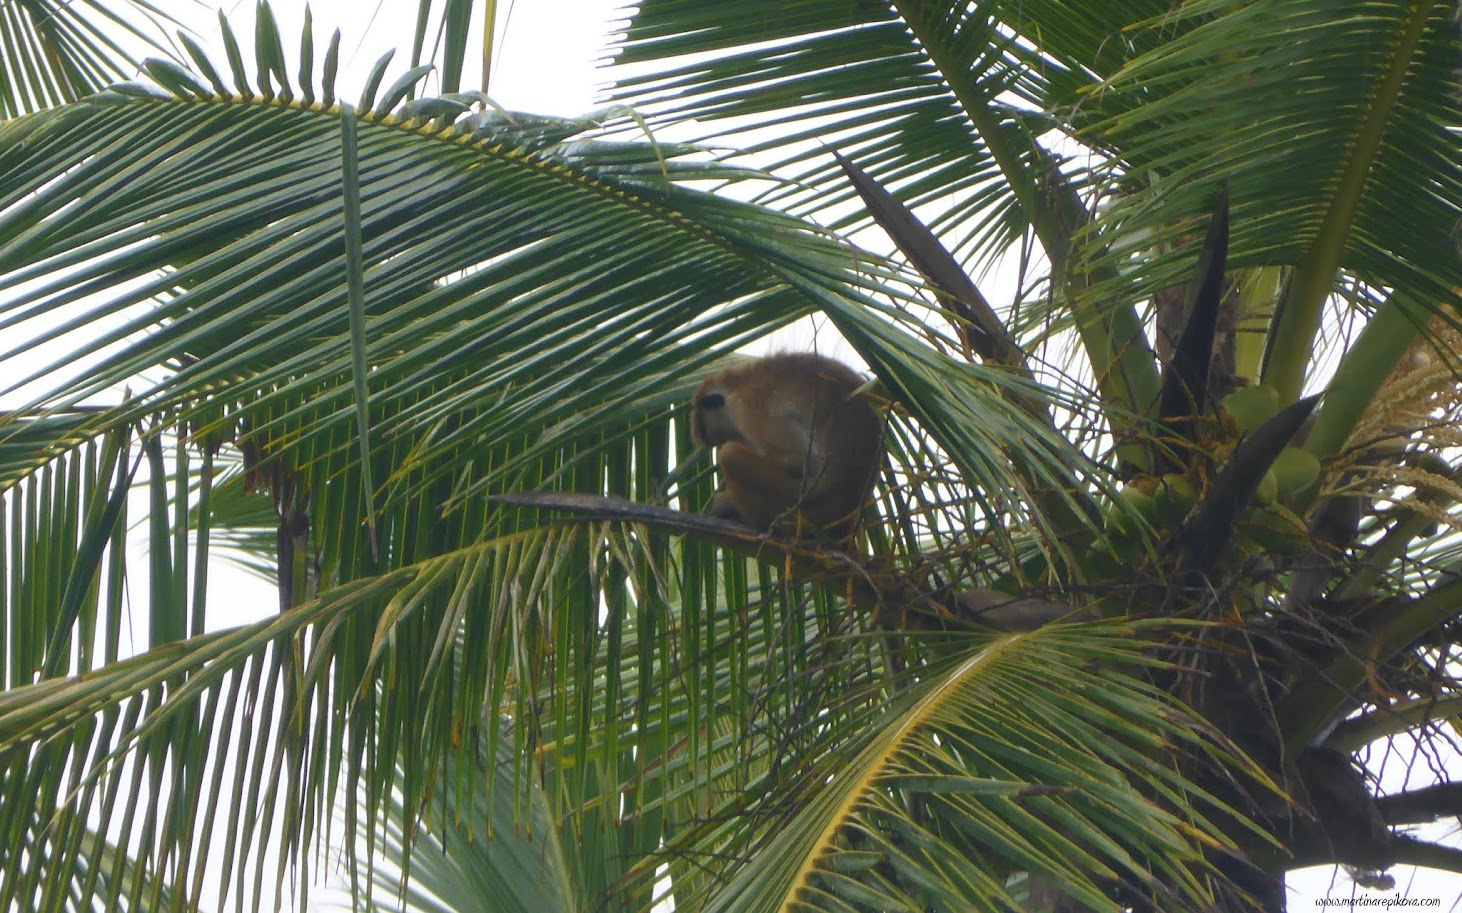 Monkey in the palm tree, Sri Lanka